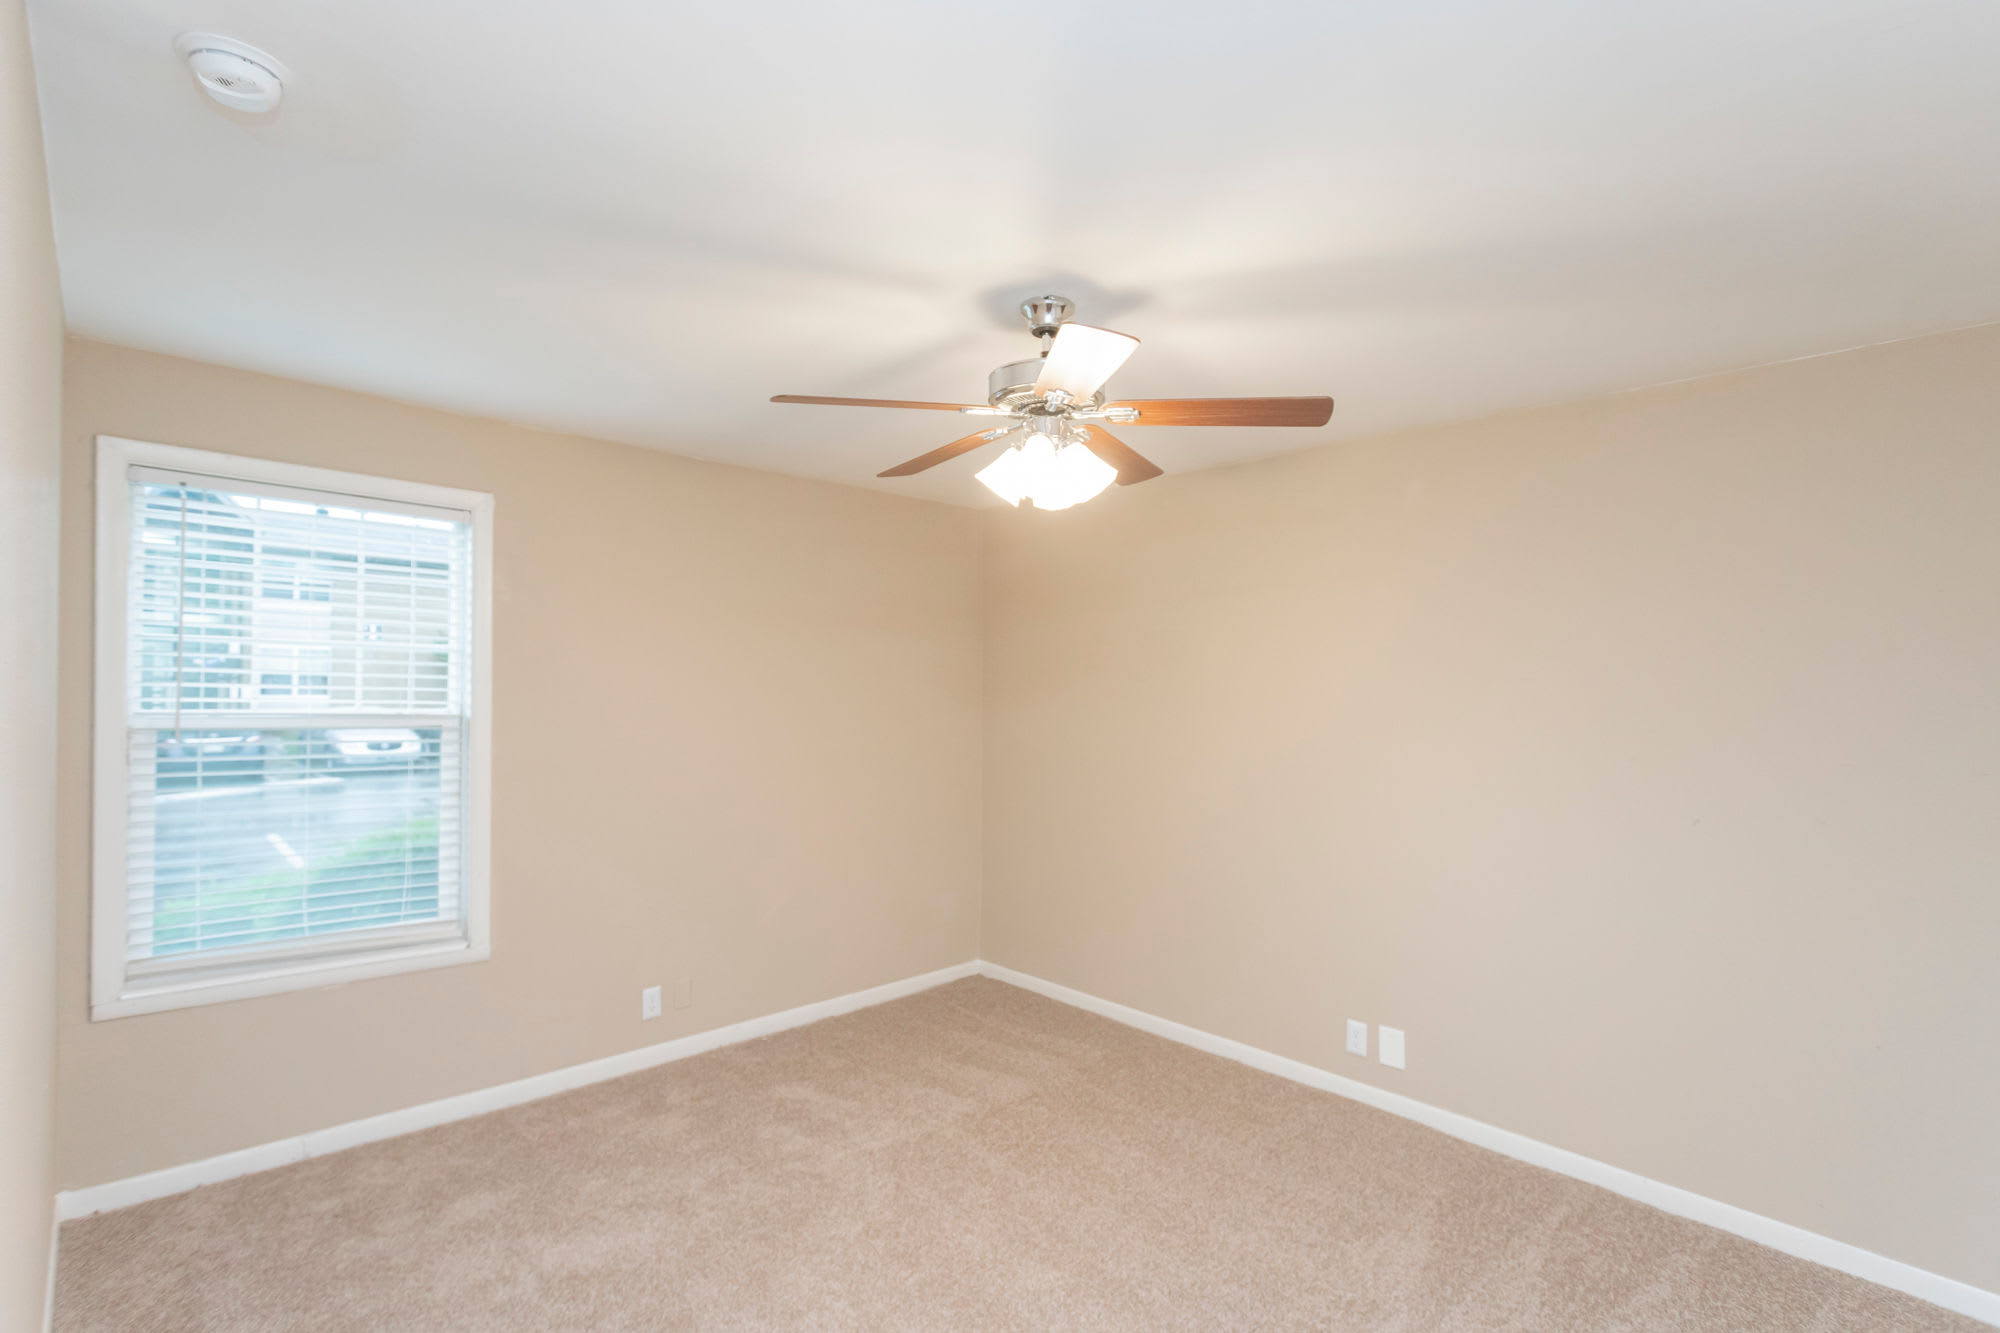 Bedroom with a ceiling fan at Maple Creek in Nashville, Tennessee